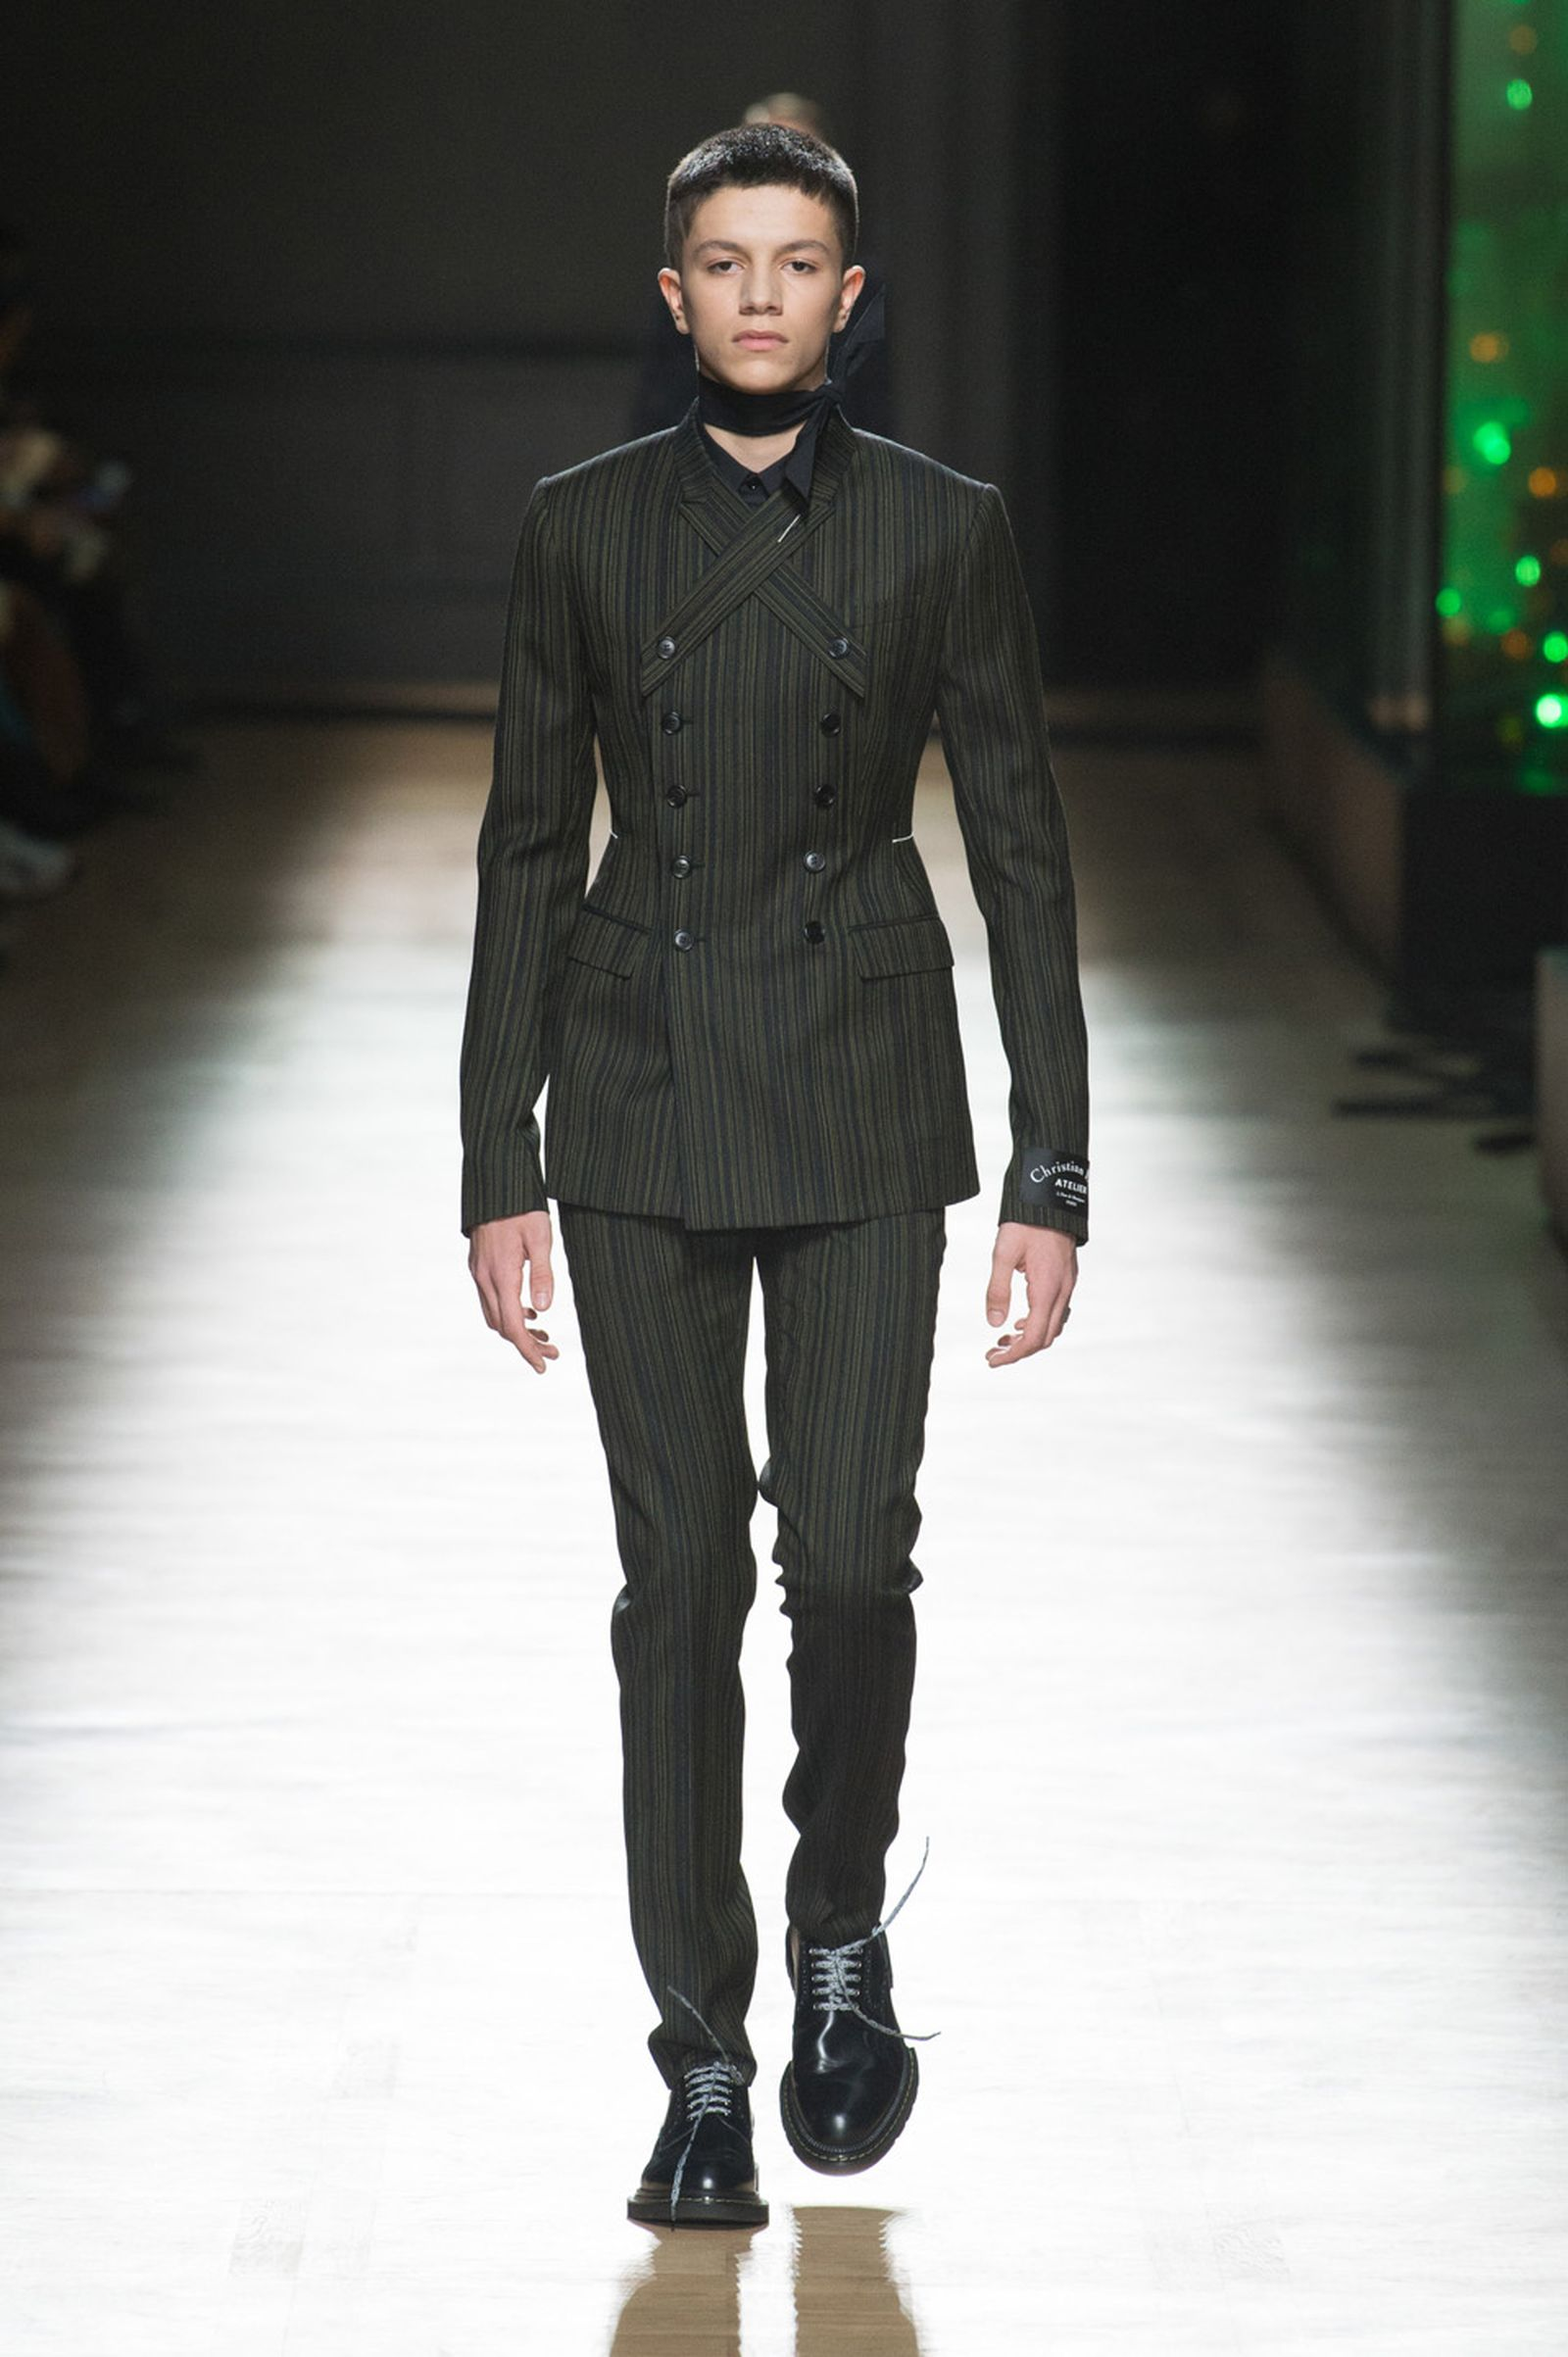 DIOR HOMME WINTER 18 19 BY PATRICE STABLE look42 Fall/WInter 2018 runway